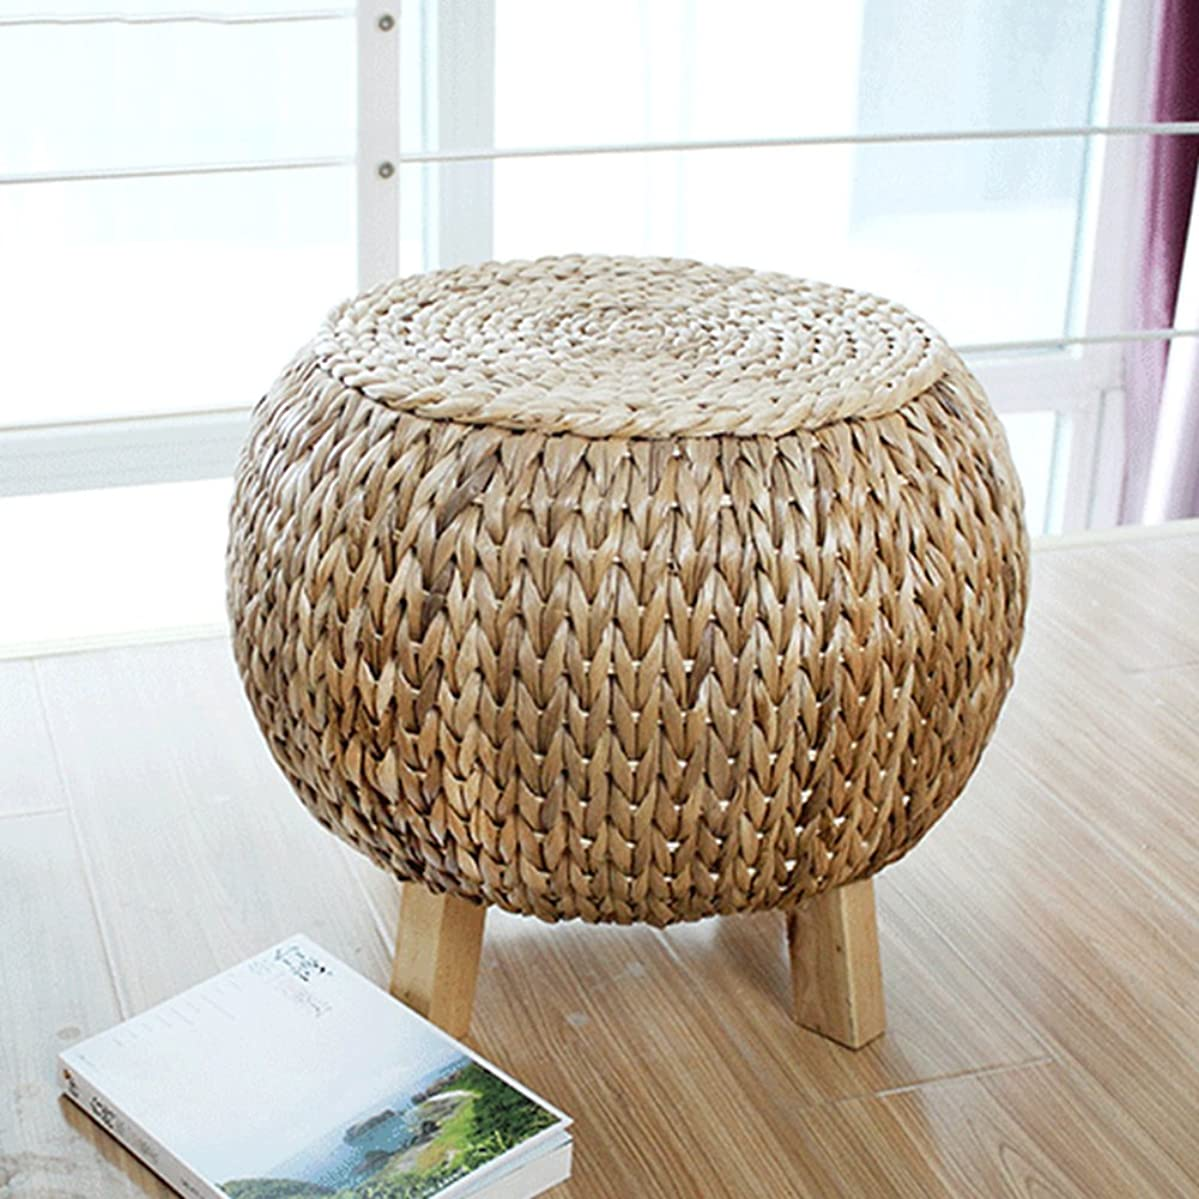 YQ WHJB Rattan Ottoman,Round Foot Stools,Sofa Bench Hand-Woven Stepping Stool Change Shoe Bench-4 Wooden Legs-A